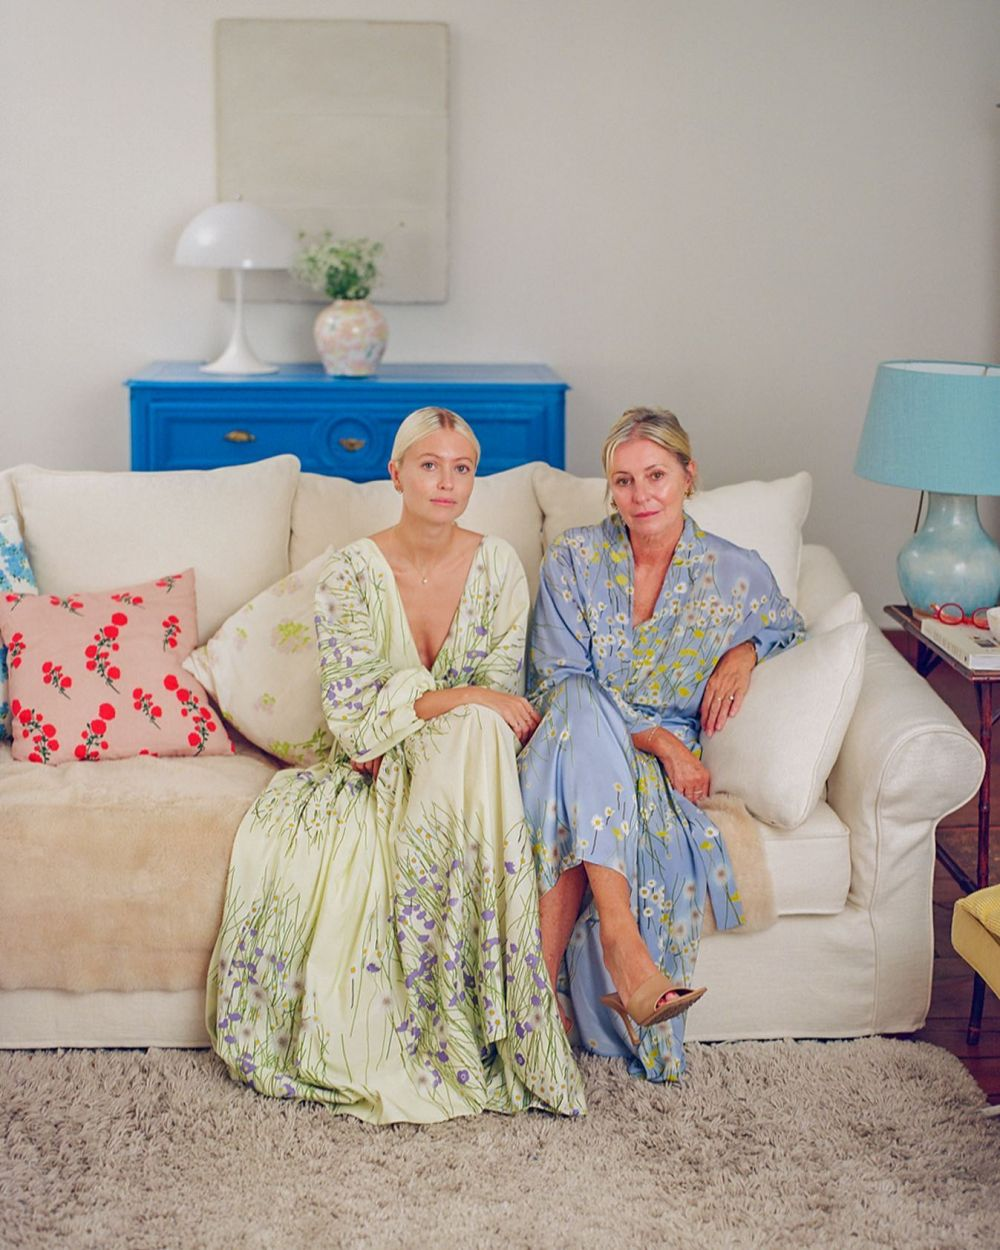 My mother and I were photographed for the launch of our homeware collection @harrods.  Thank you to the Harrods team for this opportunity ~ we're beyond thrilled to be represented by a store we have so many fond memories of. Make sure to visit Harrods to discover their exclusive mint colourway!  Photo by @evadonckers